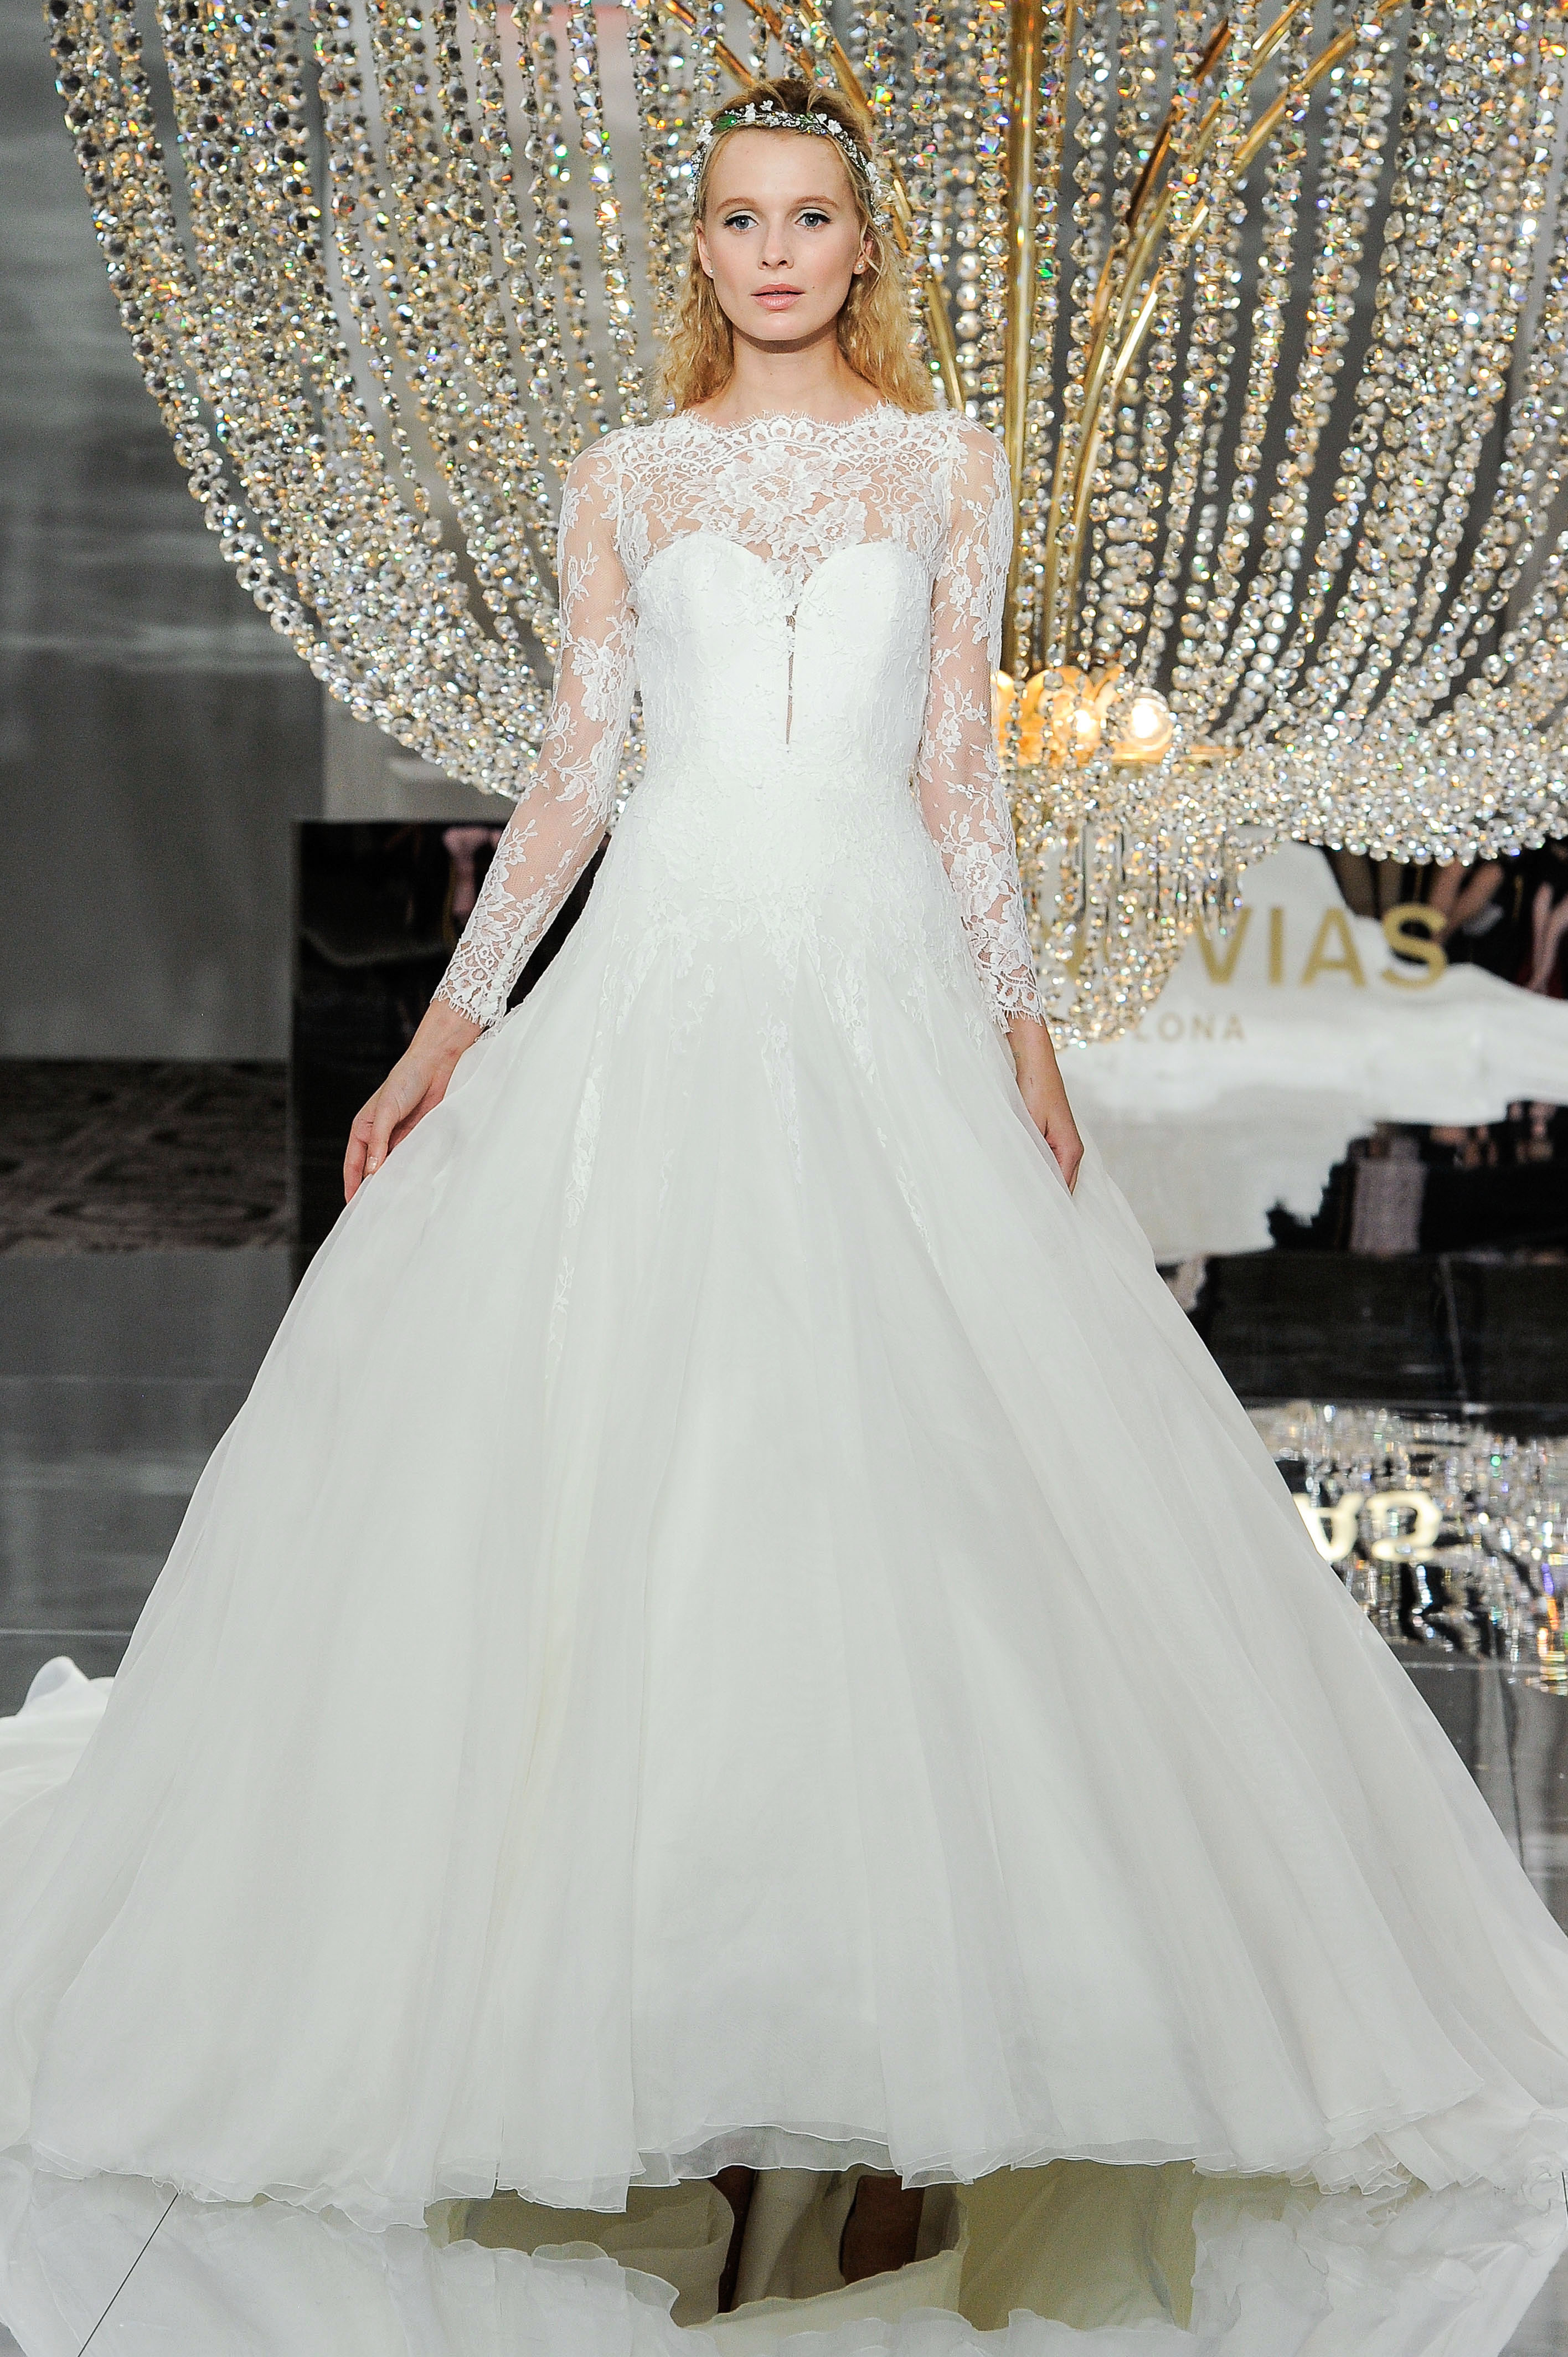 pronovias wedding dress fall 2018 long sleeves lace illusion sweetheart ball gown